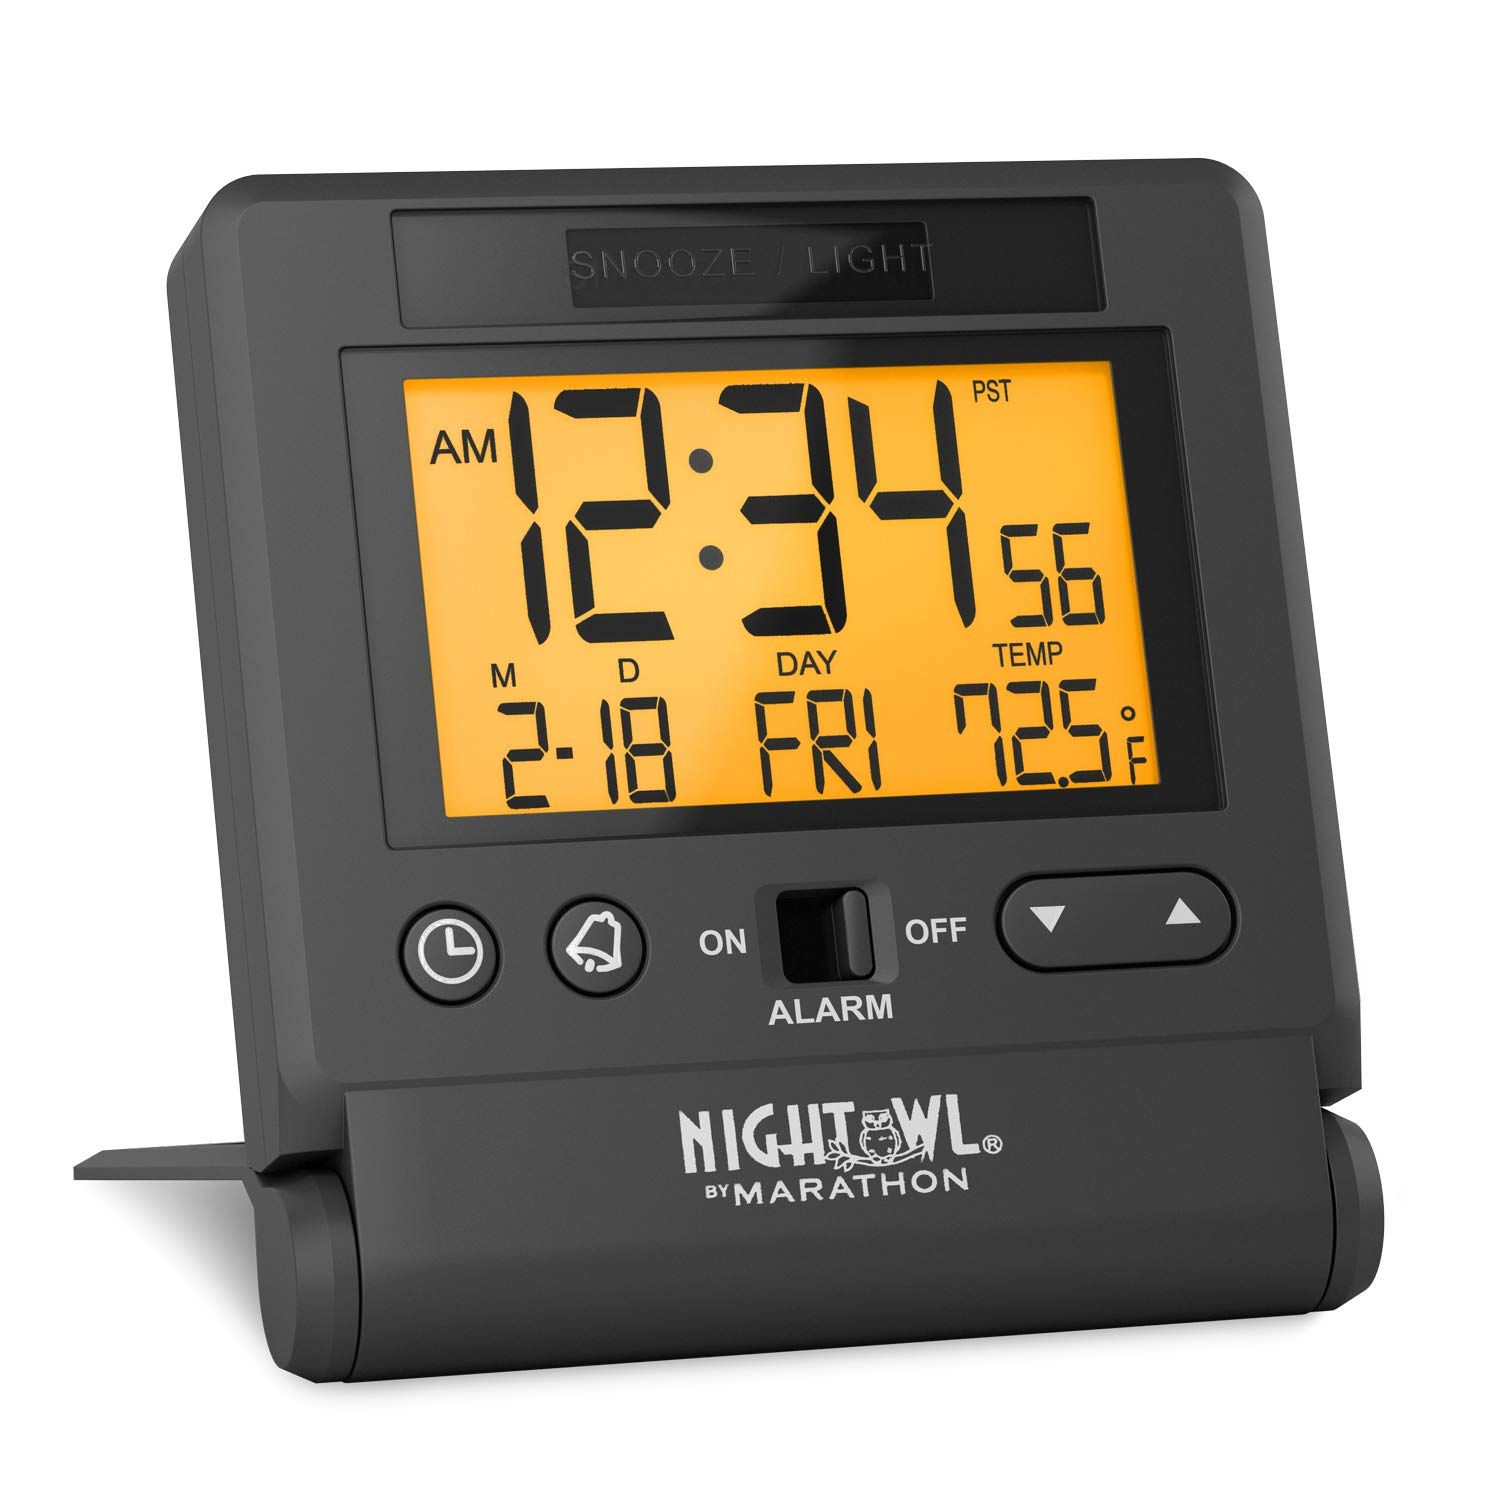 Marathon CL030036BK Atomic Travel Alarm Clock with Auto Back Light Feature, Calendar and Temperature. Folds into One Compact Unit for Travel. ...